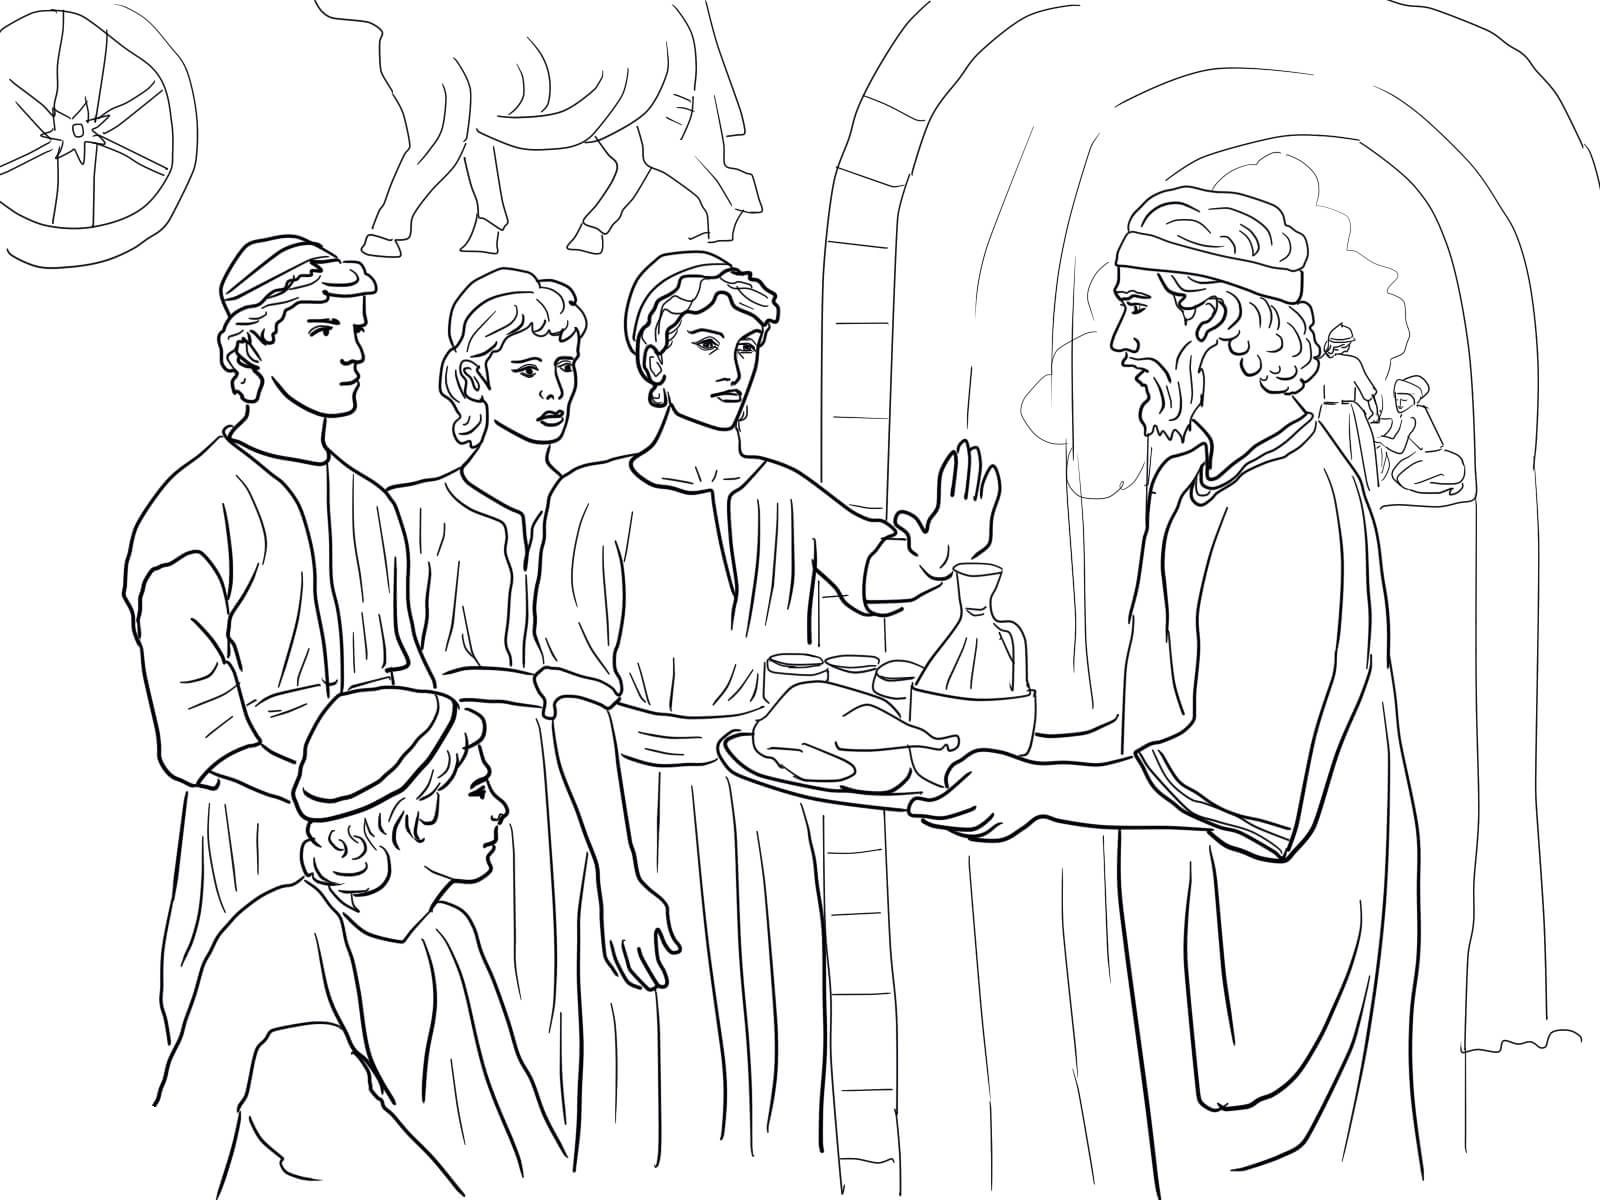 coloring bible daniel makes good choices and refuses king's